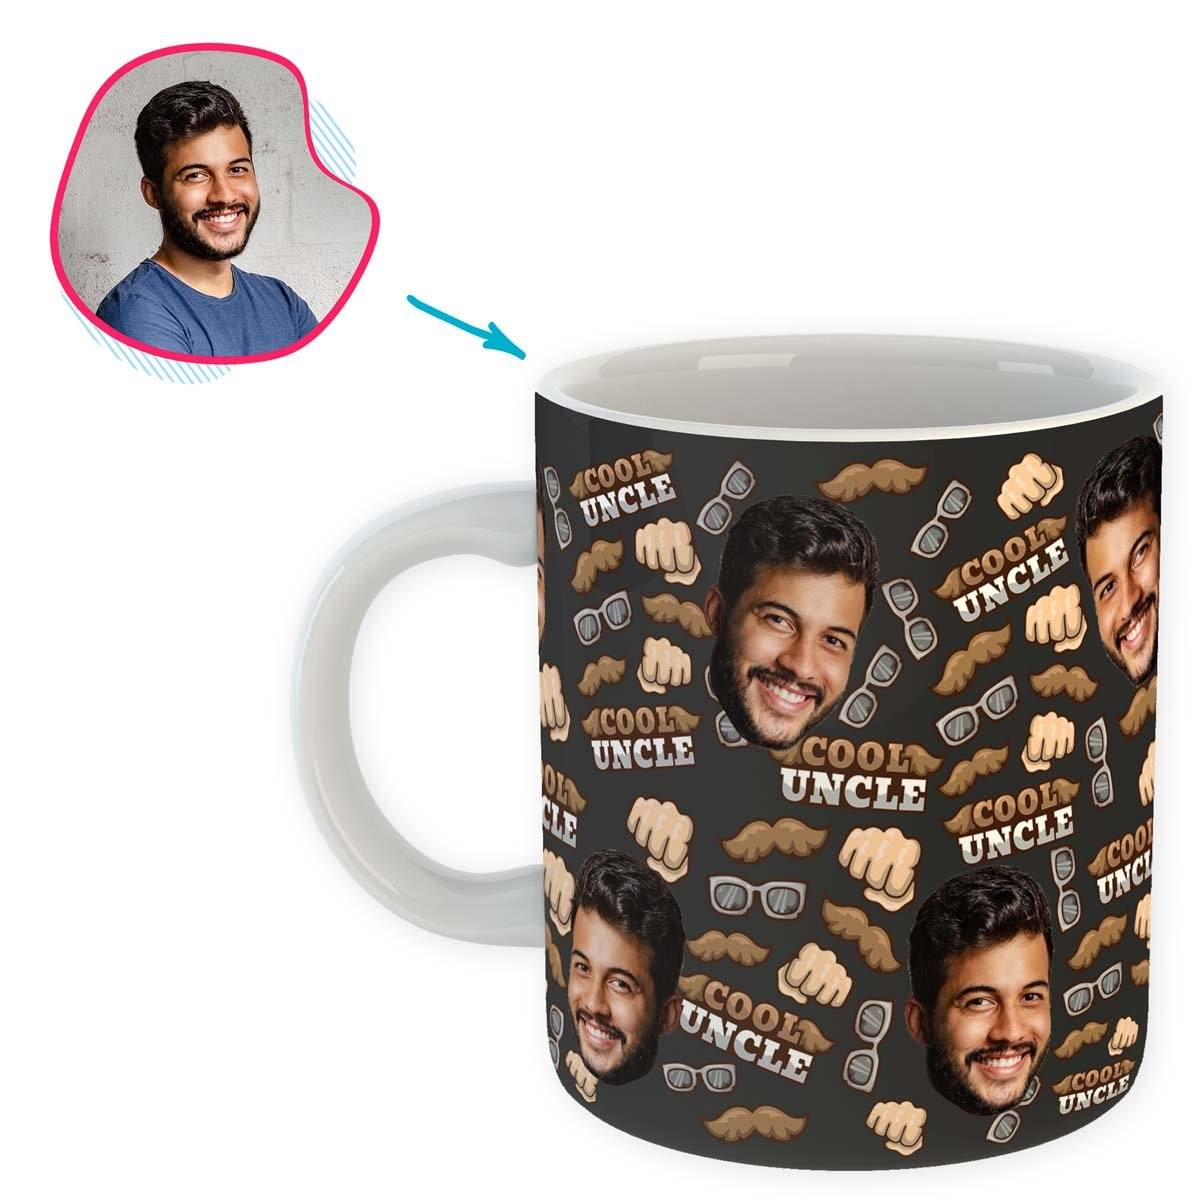 Dark Uncle personalized mug with photo of face printed on it